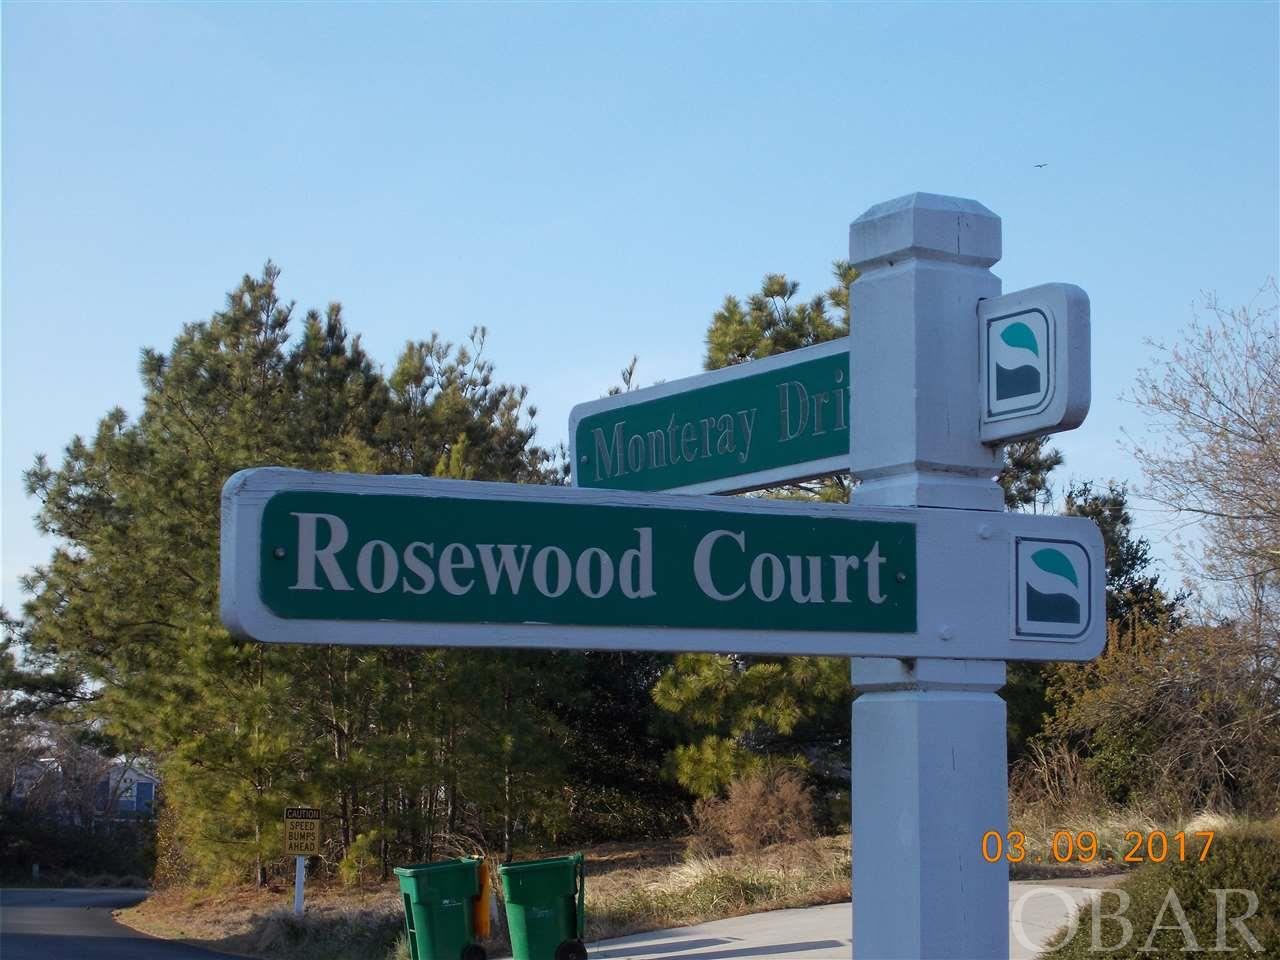 836 Rosewood Court,Corolla,NC 27927,4 Bedrooms Bedrooms,4 BathroomsBathrooms,Residential,Rosewood Court,95669